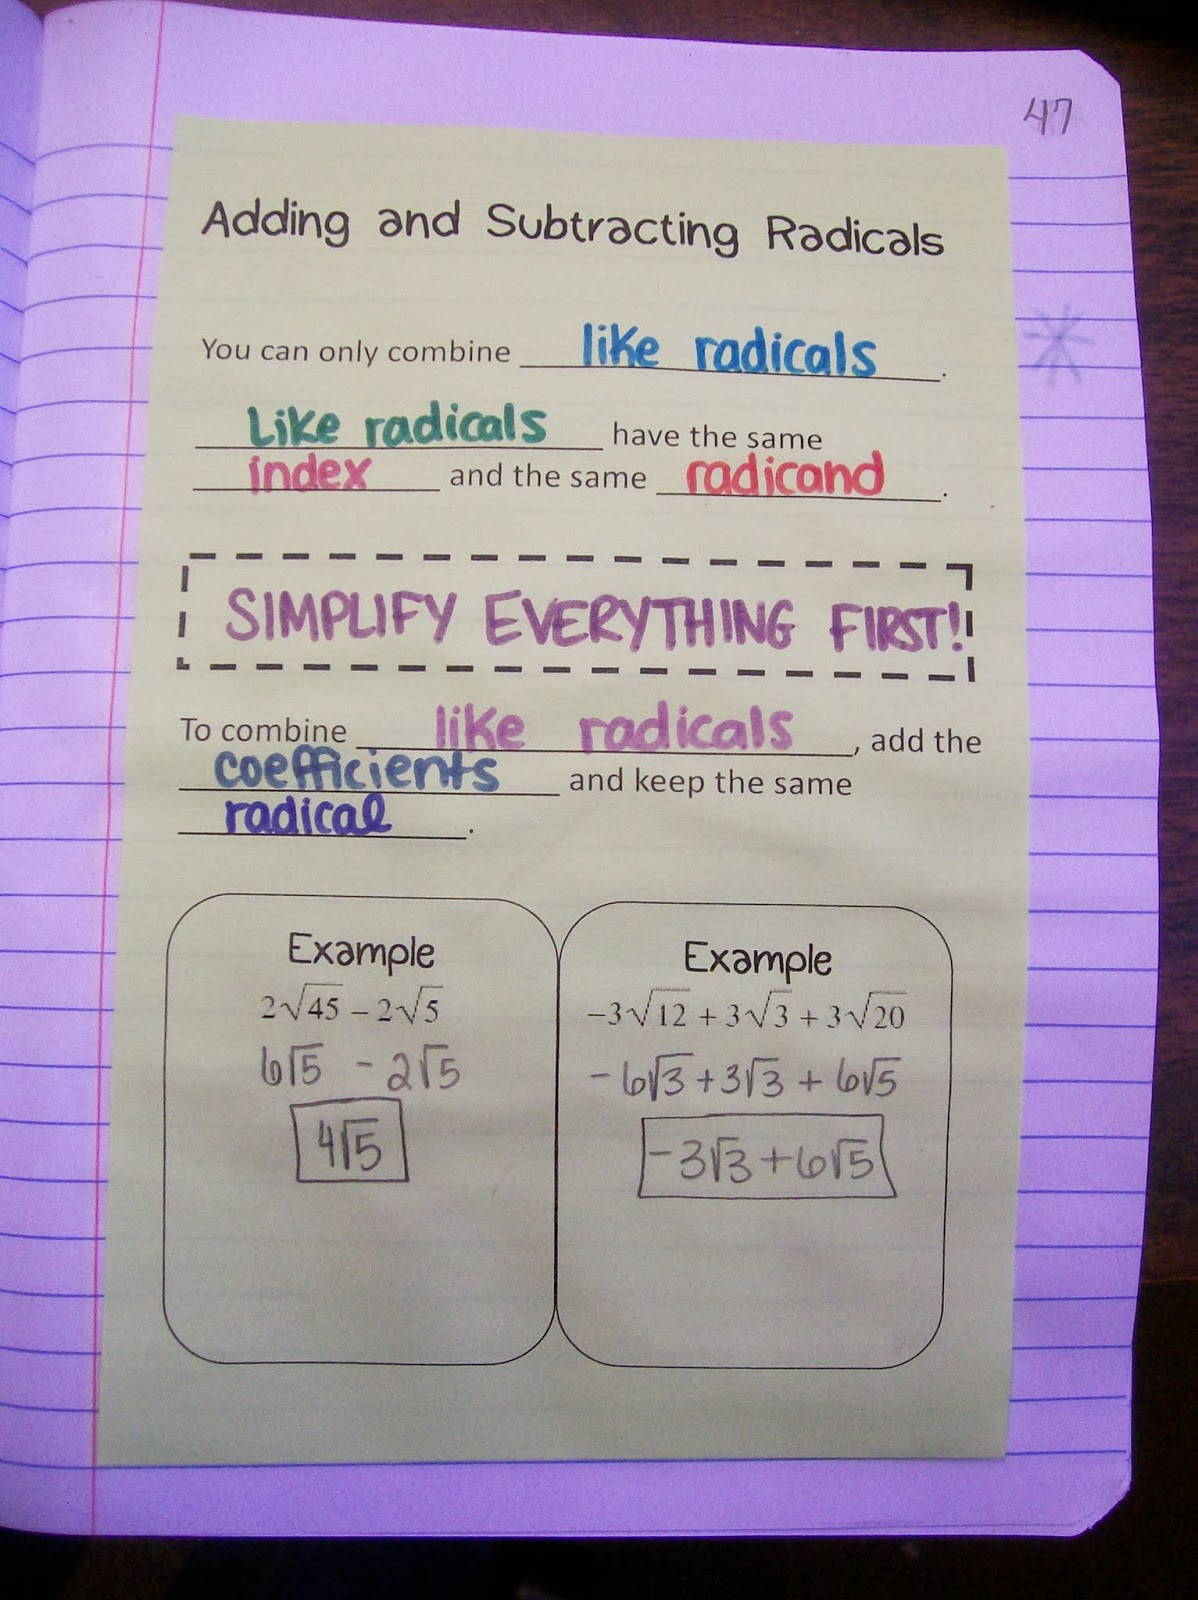 Adding and Subtracting Like Radicals Notes